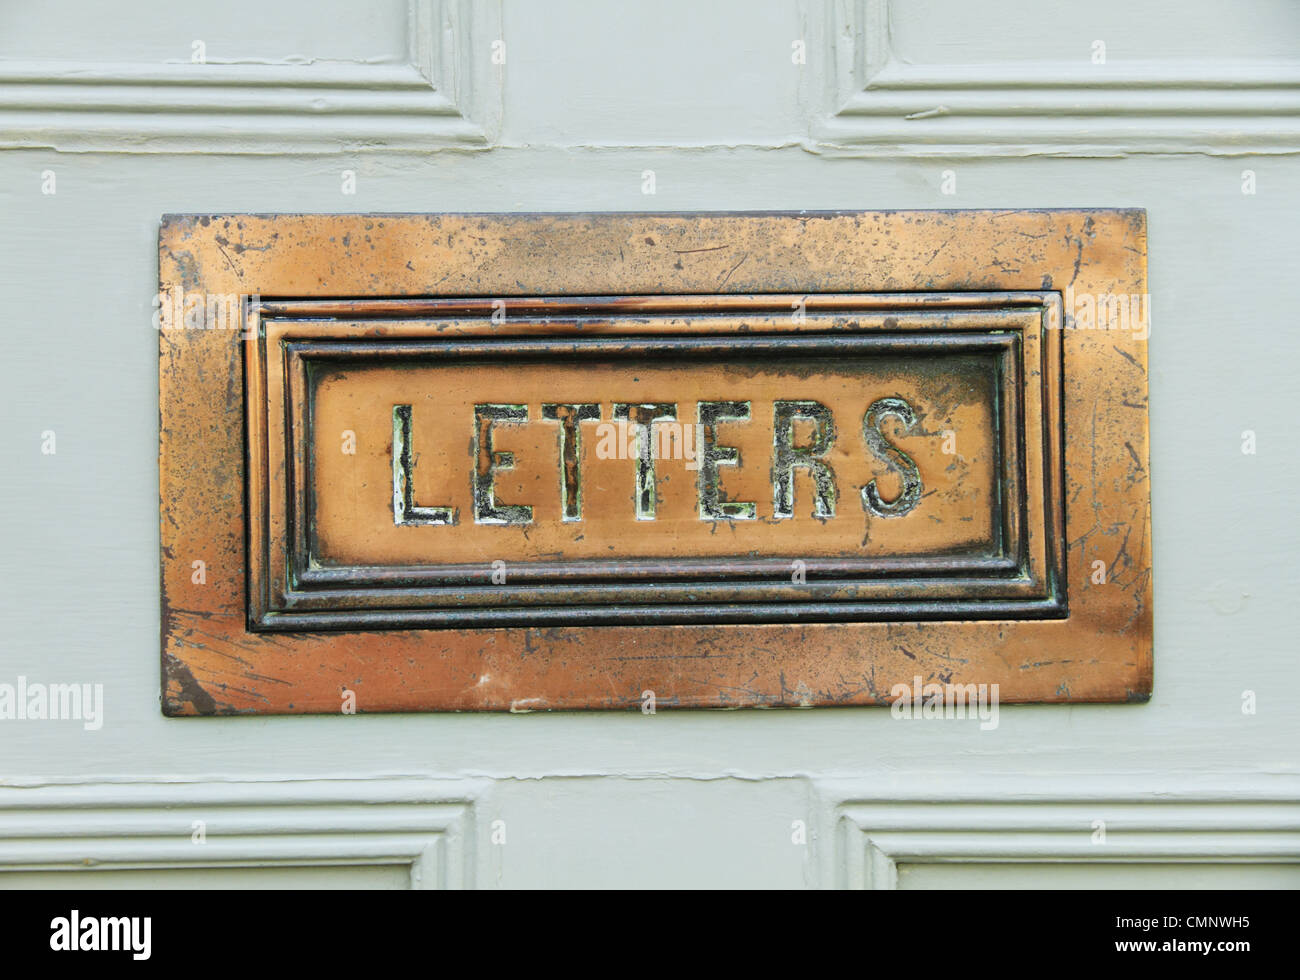 An old antique ornate brass letter mail box on a front door in Lewes, East Sussex, England. - Stock Image